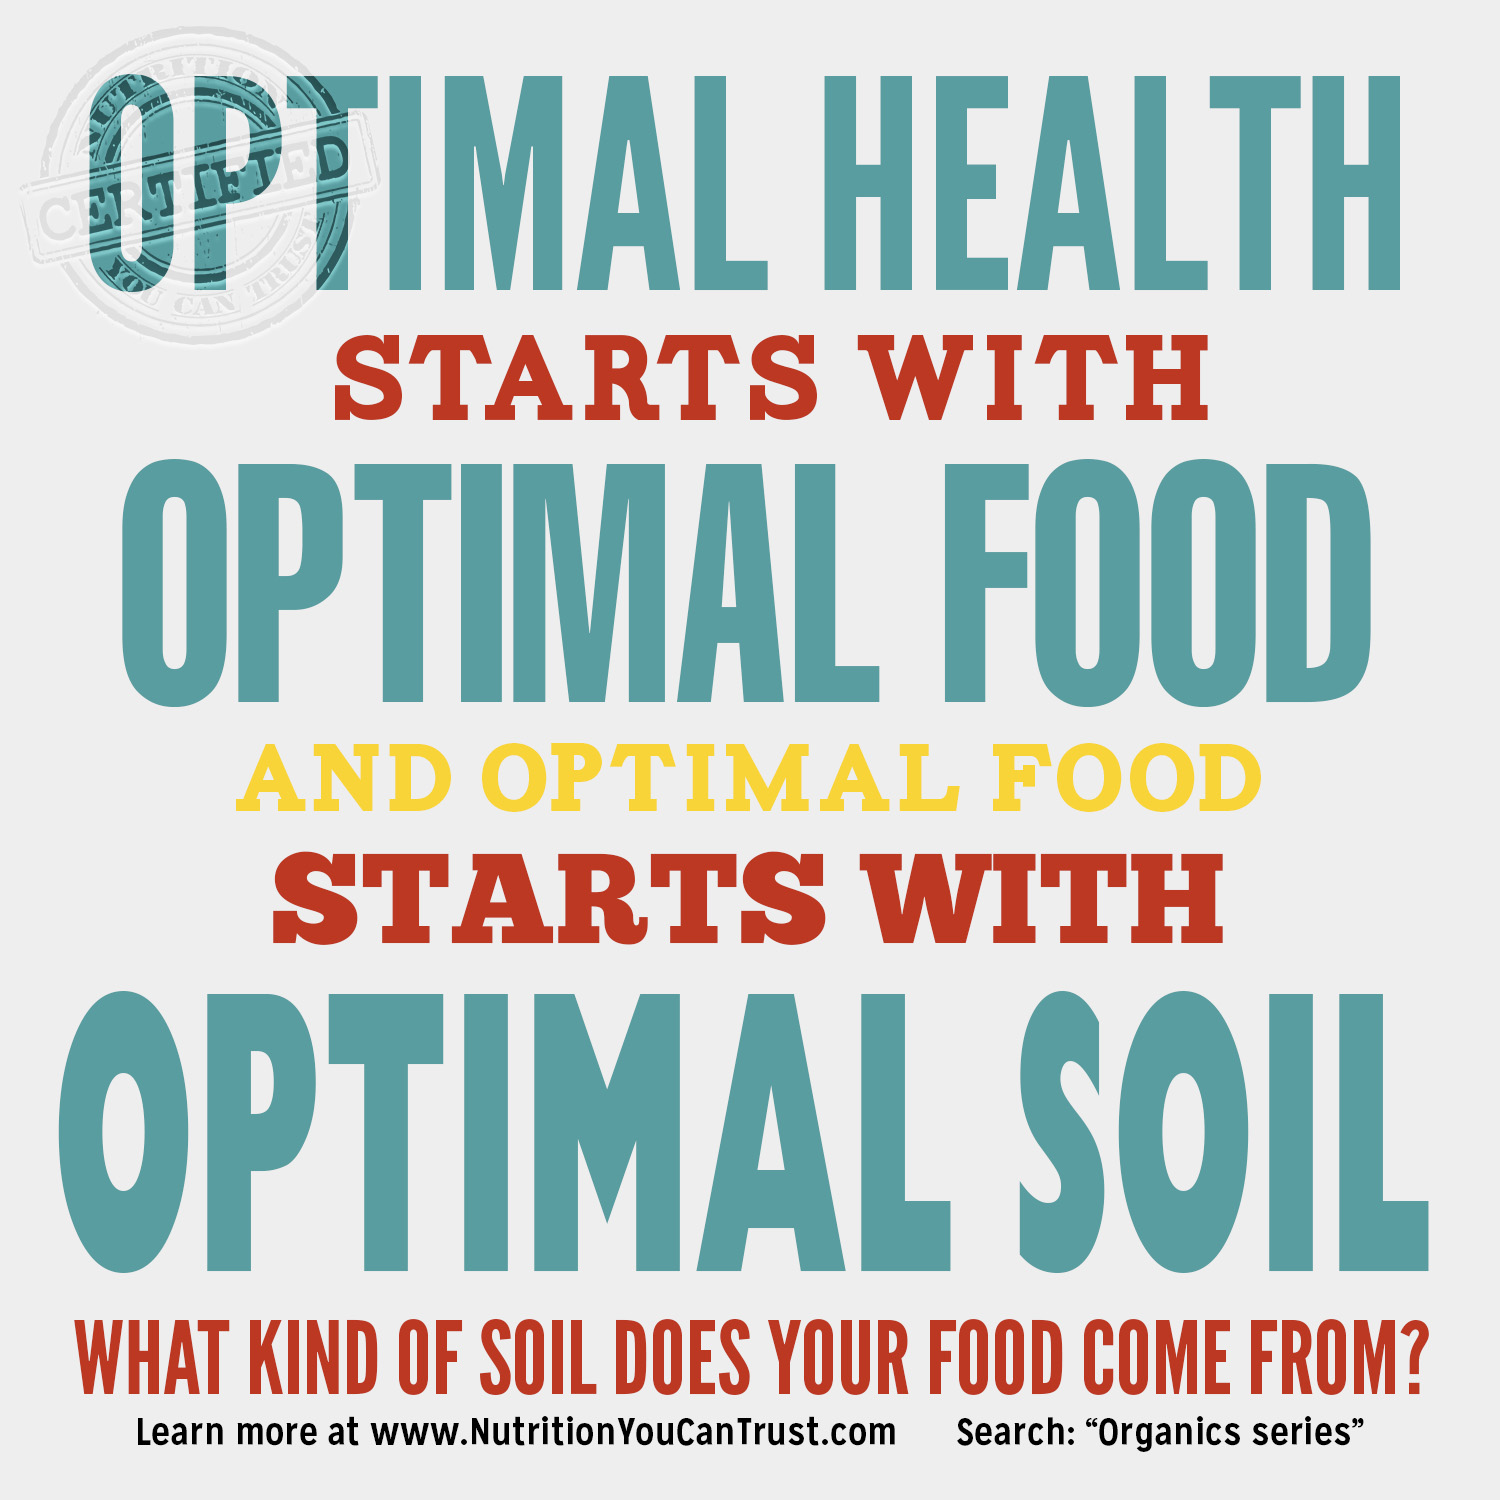 Optimal Soil equals Optimal Food